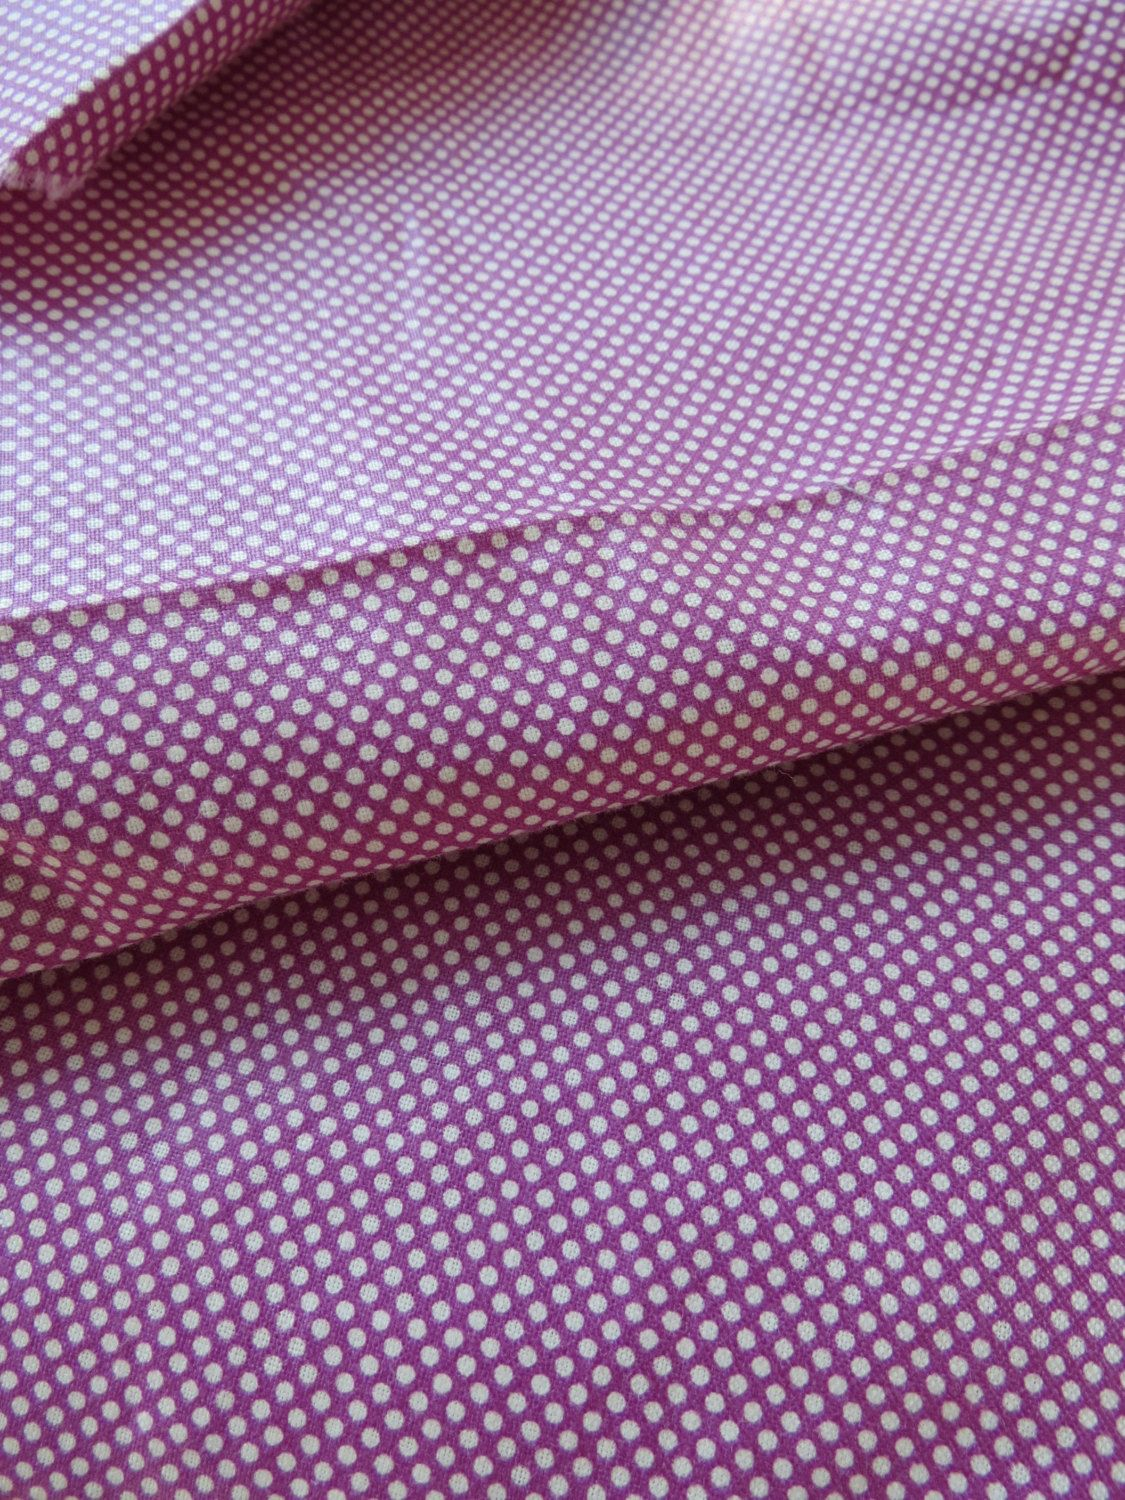 Enough fabric for a quilt backing ~ 9 yards Vintage Purple TINY White Polka Dots Printed Cotton Fabric Glazed 36 inch Wide Chintz by LeonasOldeLinens on Etsy